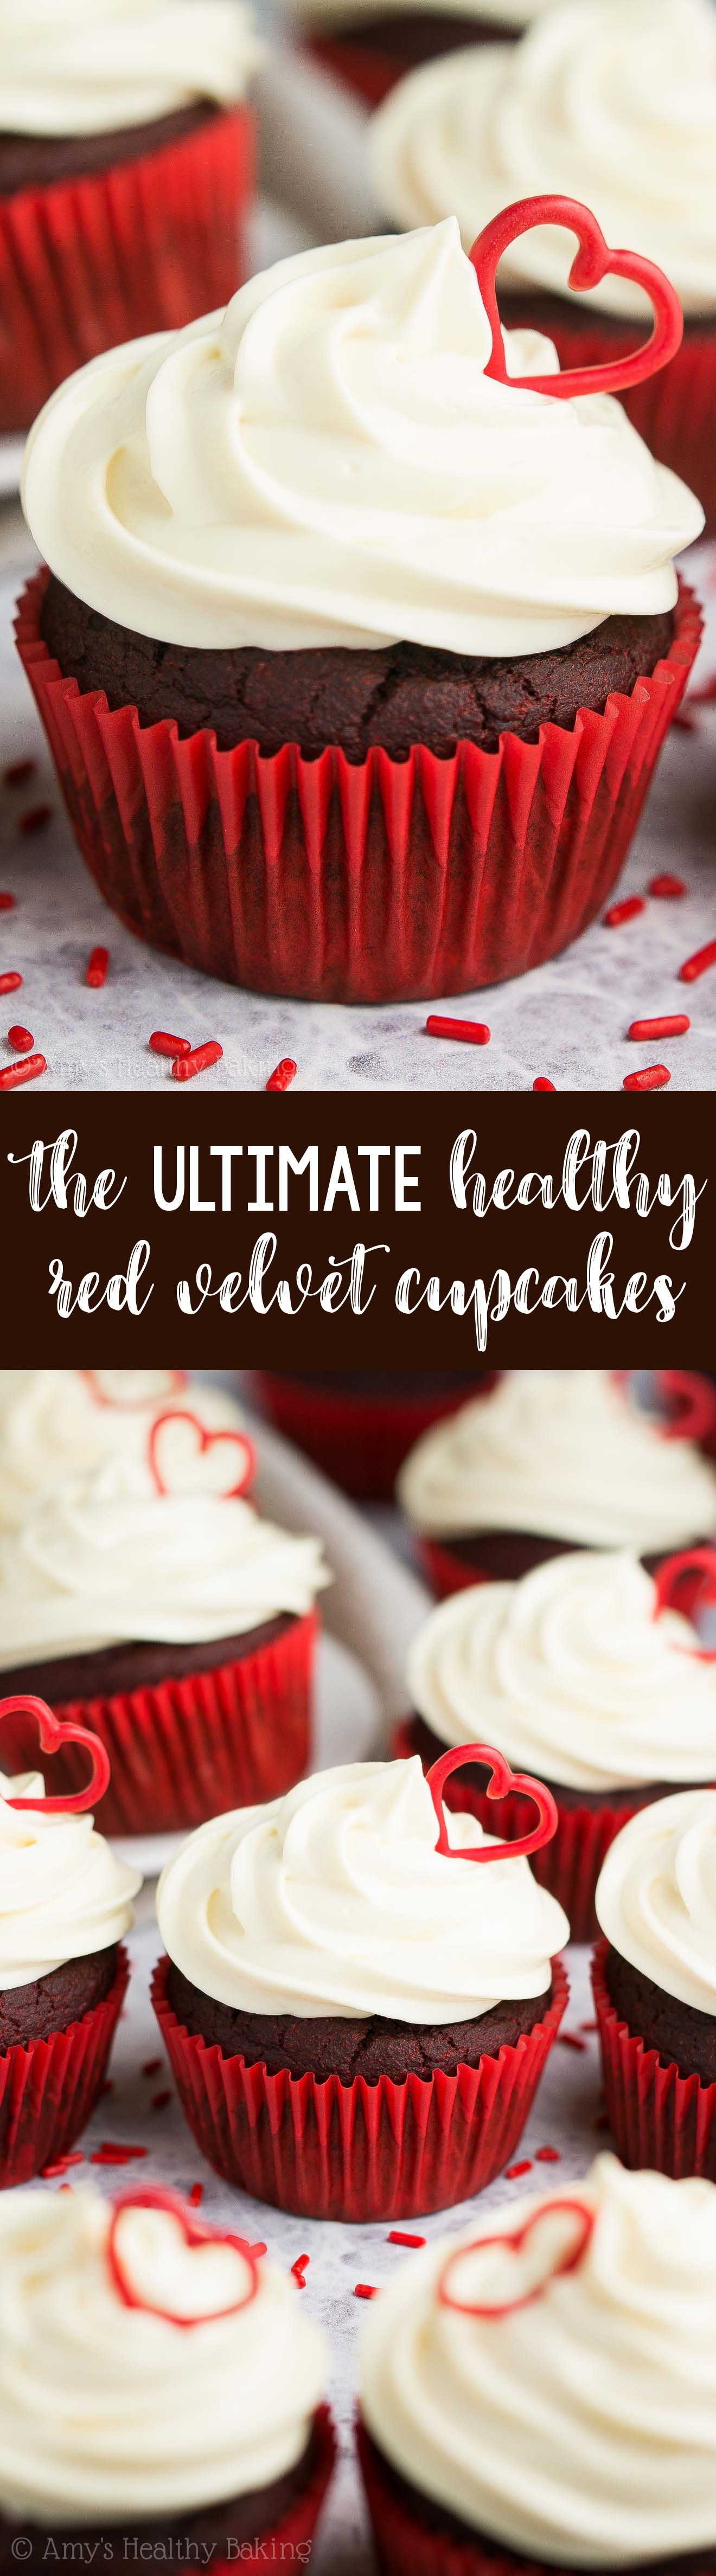 The ULTIMATE Healthy Red Velvet Cupcakes! Topped with heart-shaped decorations + cream cheese frosting!